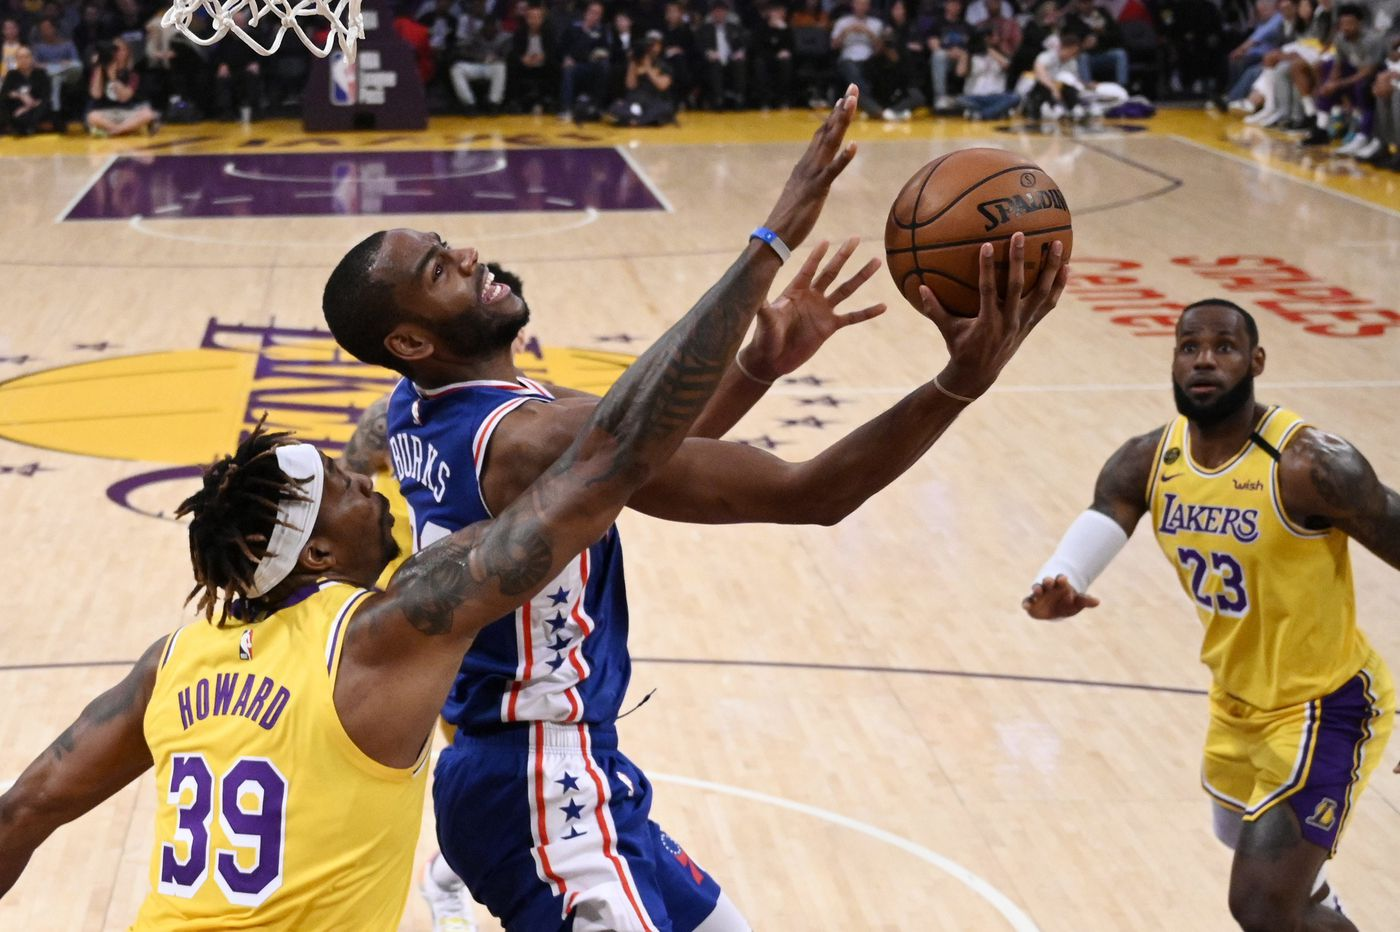 Anthony Davis, LeBron James too much for undermanned Sixers as Lakers roll, 120-107